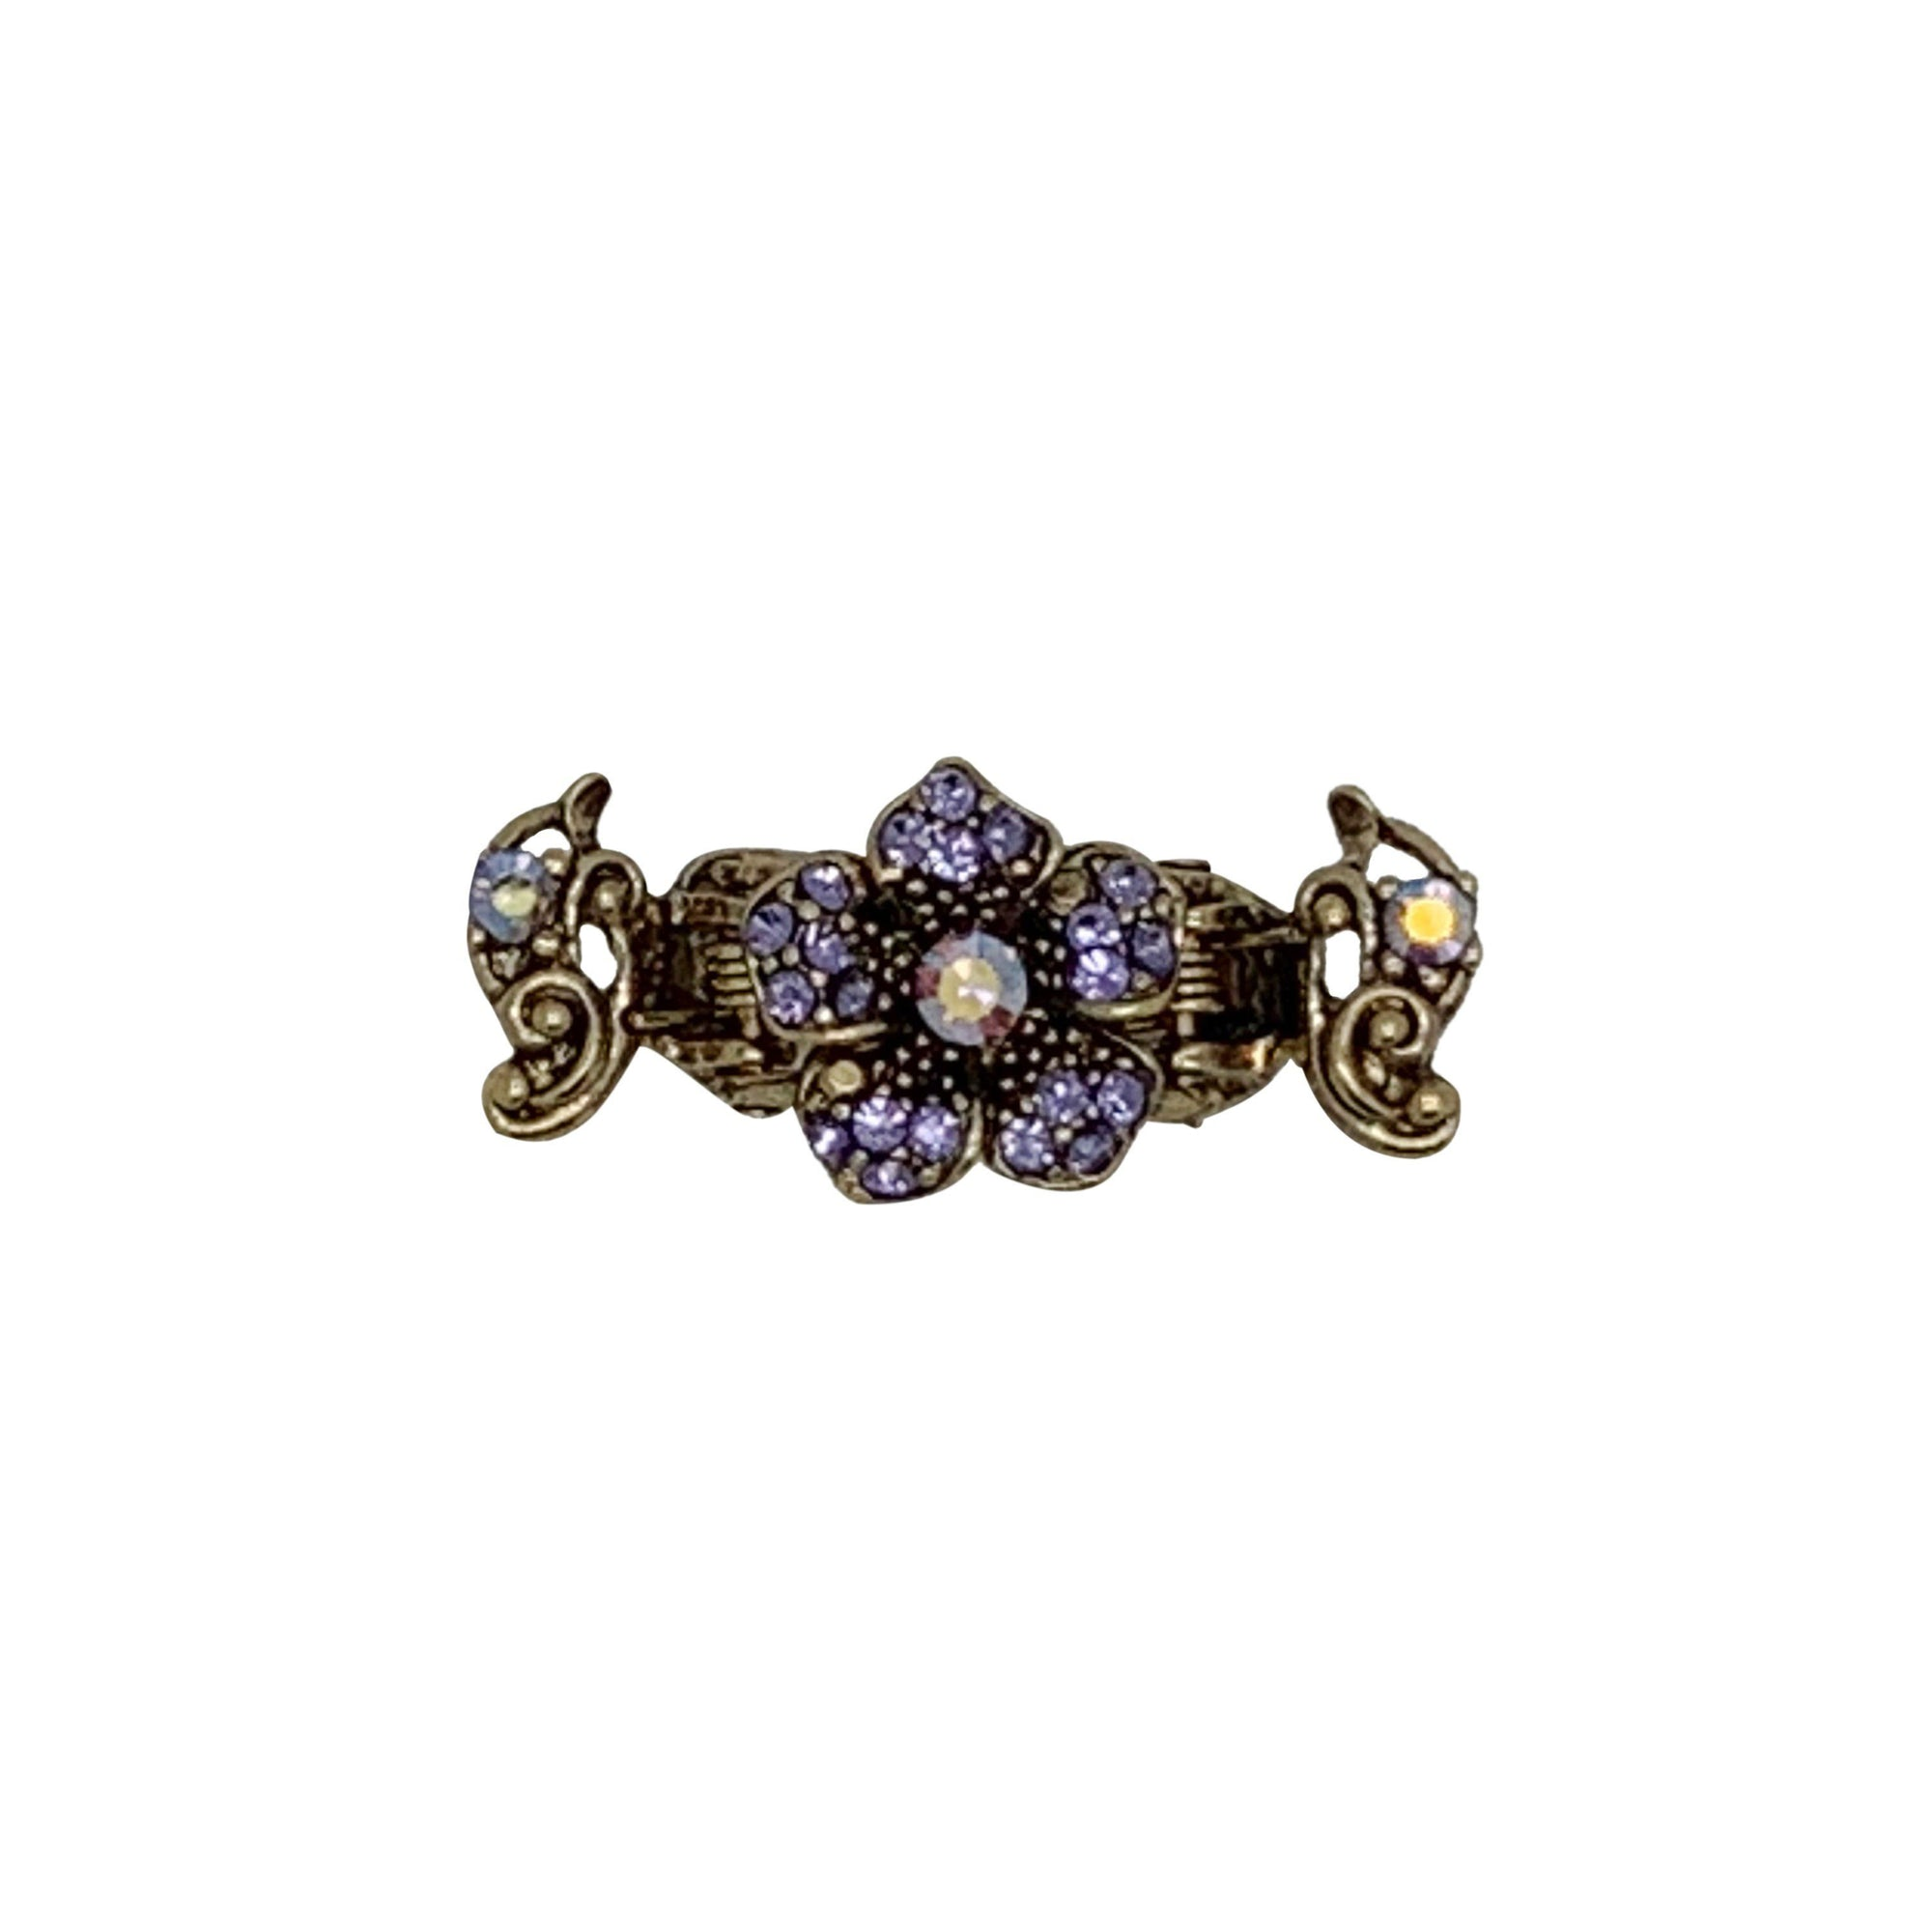 Mini Swarovski Crystal Duo Spring Hair Clip-Hair claws-Swarovski Crystal-Violet Crystal-Gold-Tegen Accessories